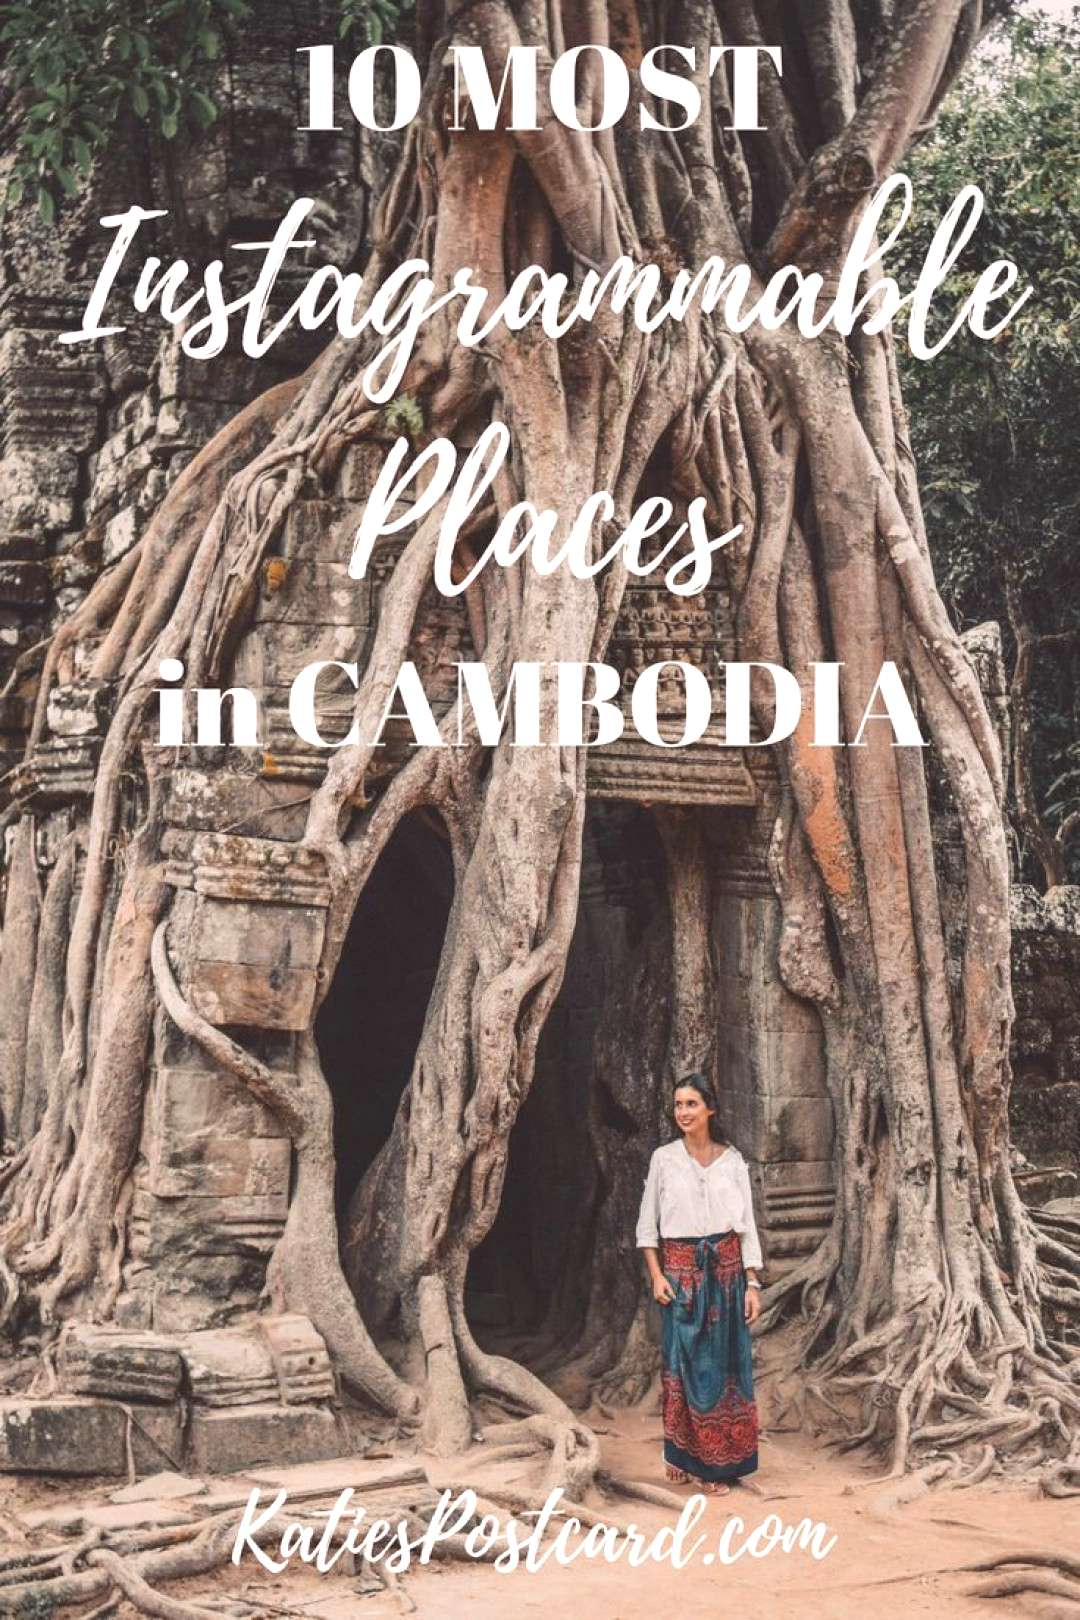 Top 10 most instagrammable places in Cambodia - Cambodia is a country you have to pity and admire.